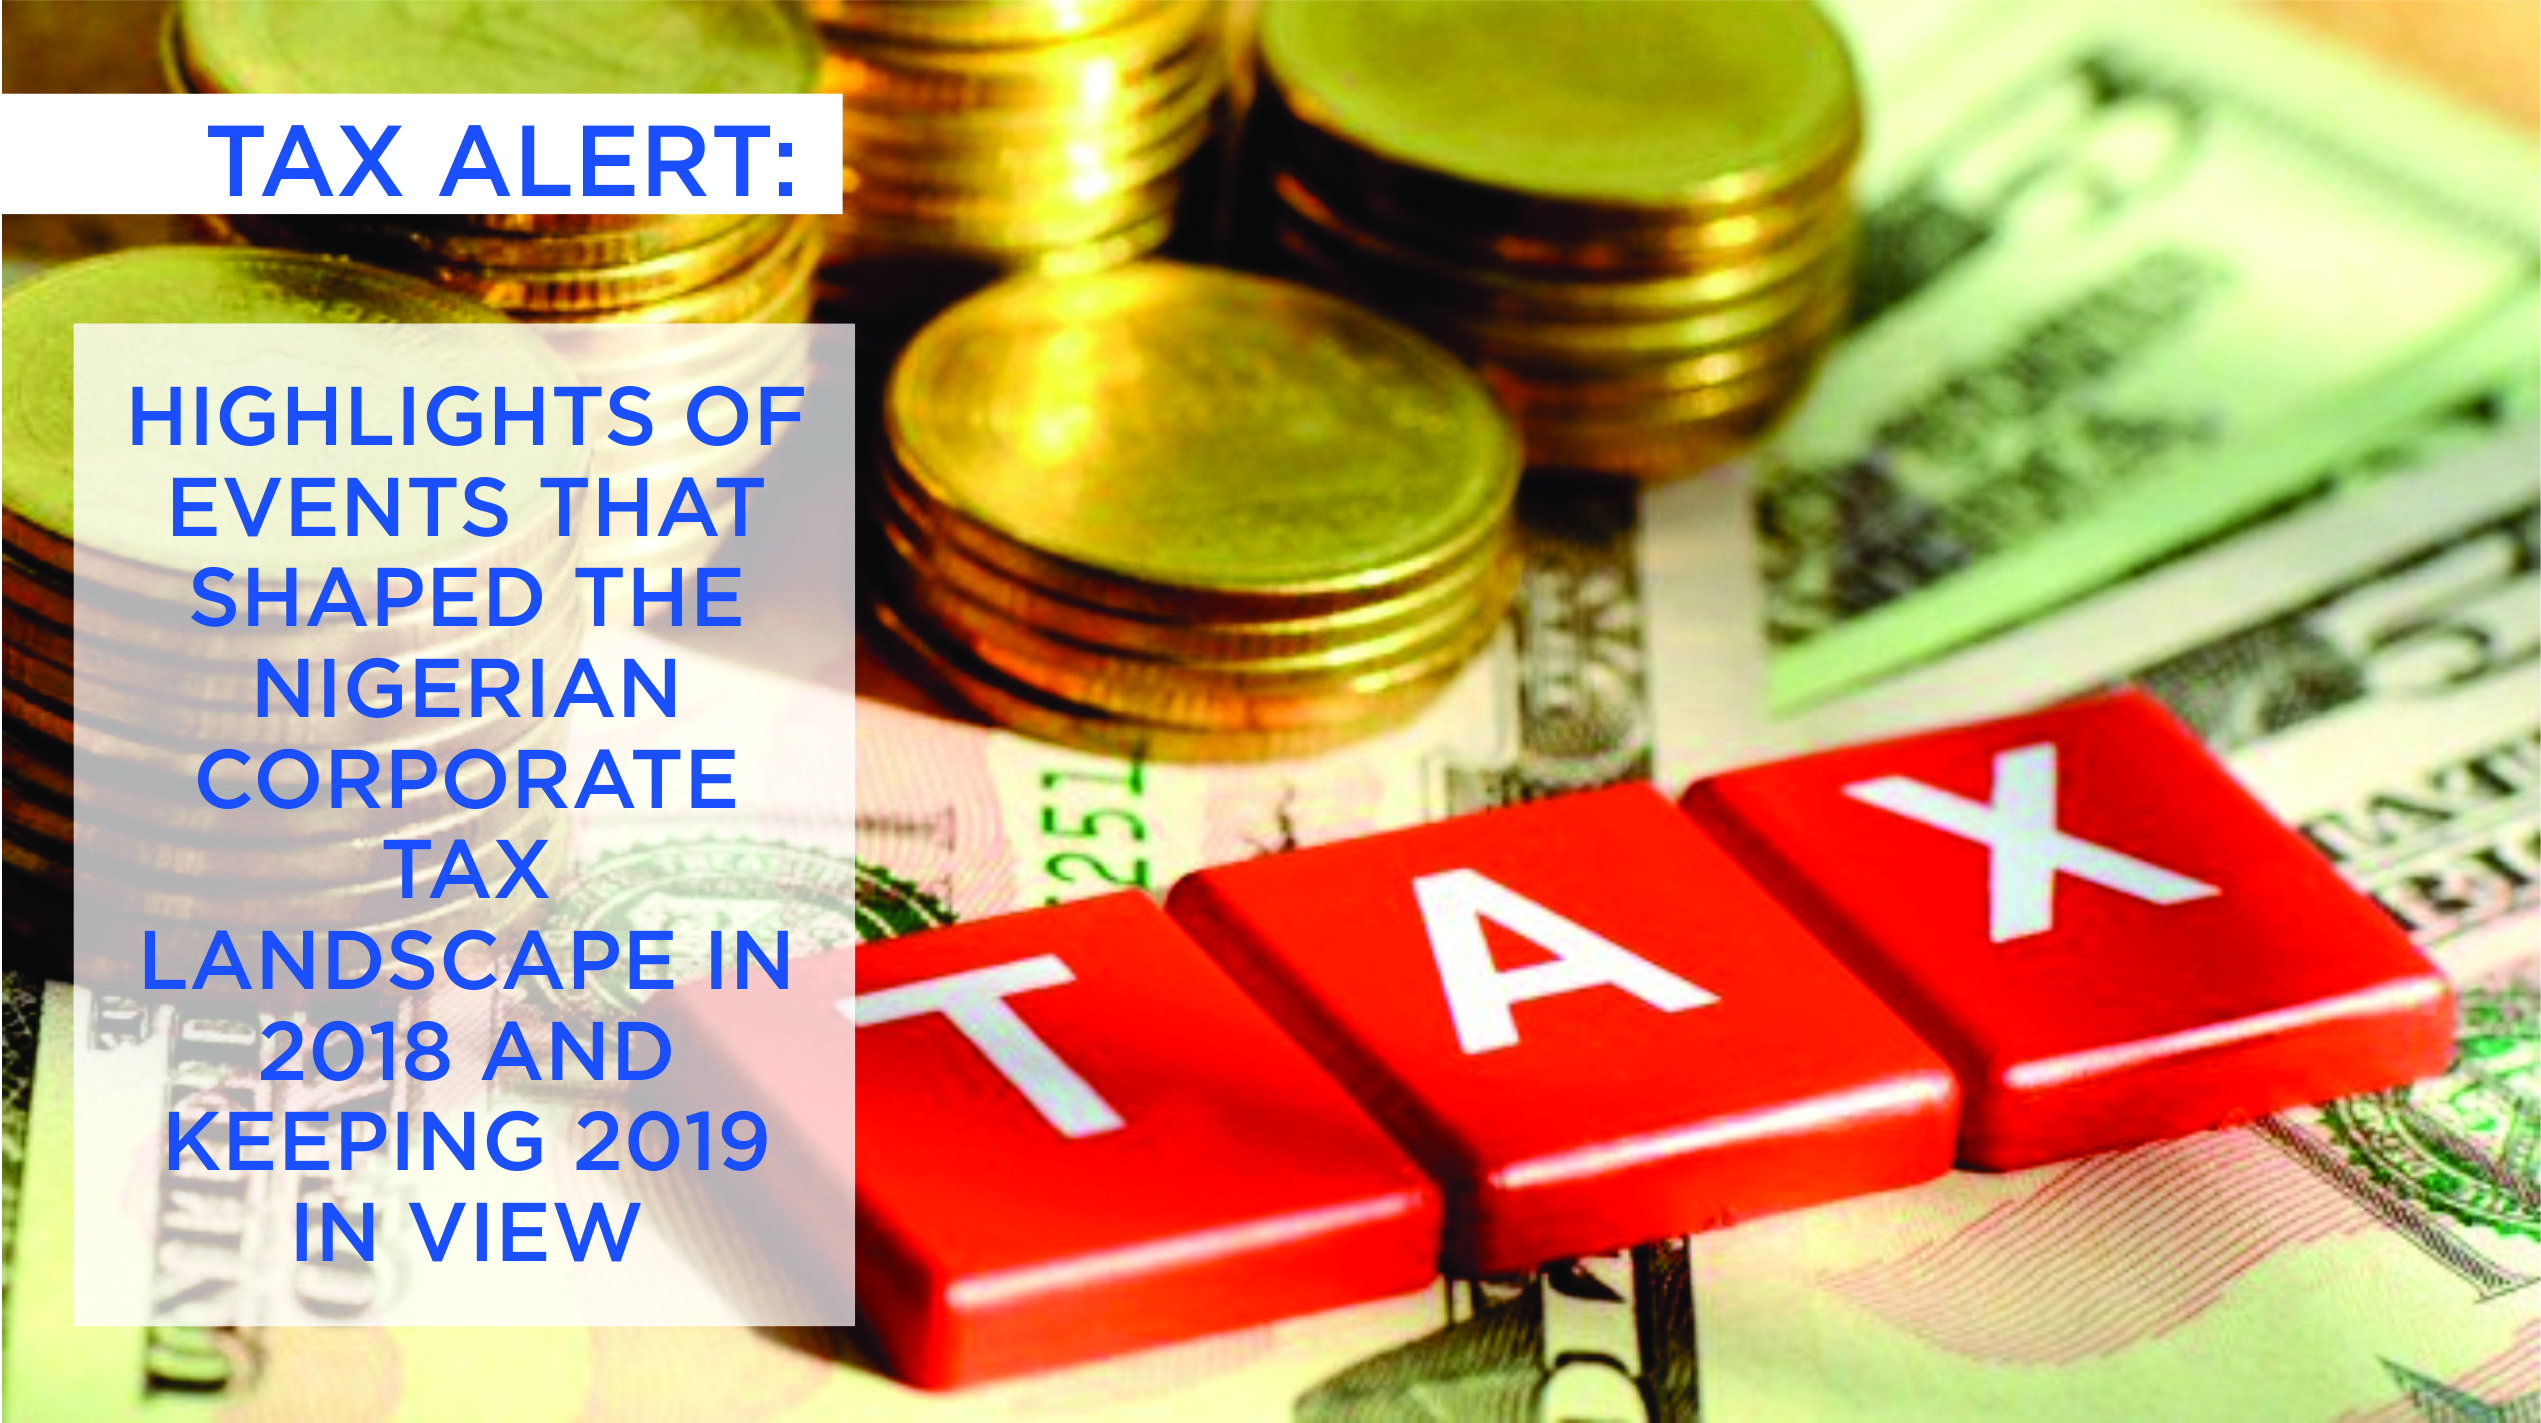 Highlights of Events that Shaped the Nigerian Corporate Tax Landscape in 2018 and Keeping 2019 In View